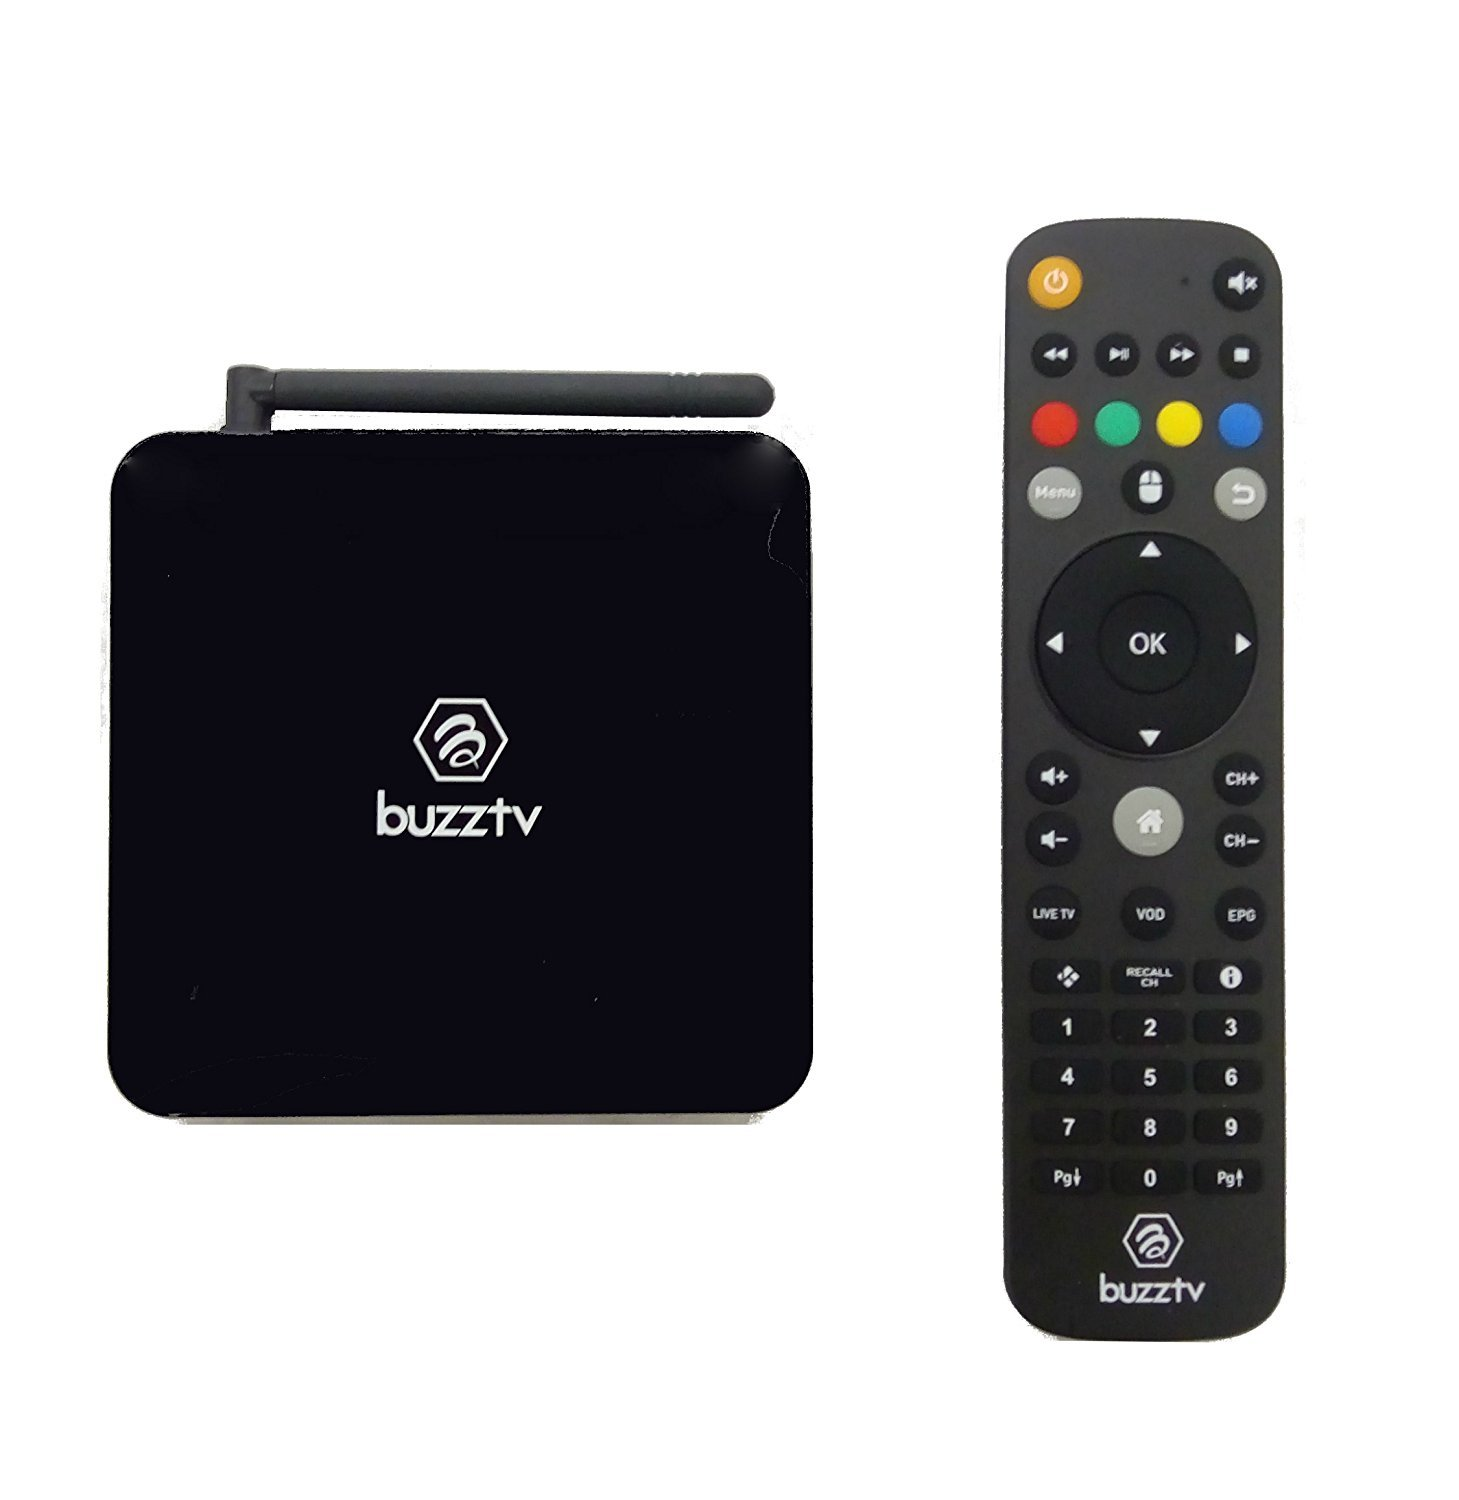 BuzzTV XPL3000 Quad Core Android TV Box and Premium Streaming Media Player Powered by 6 Marshmallow by Buzztv